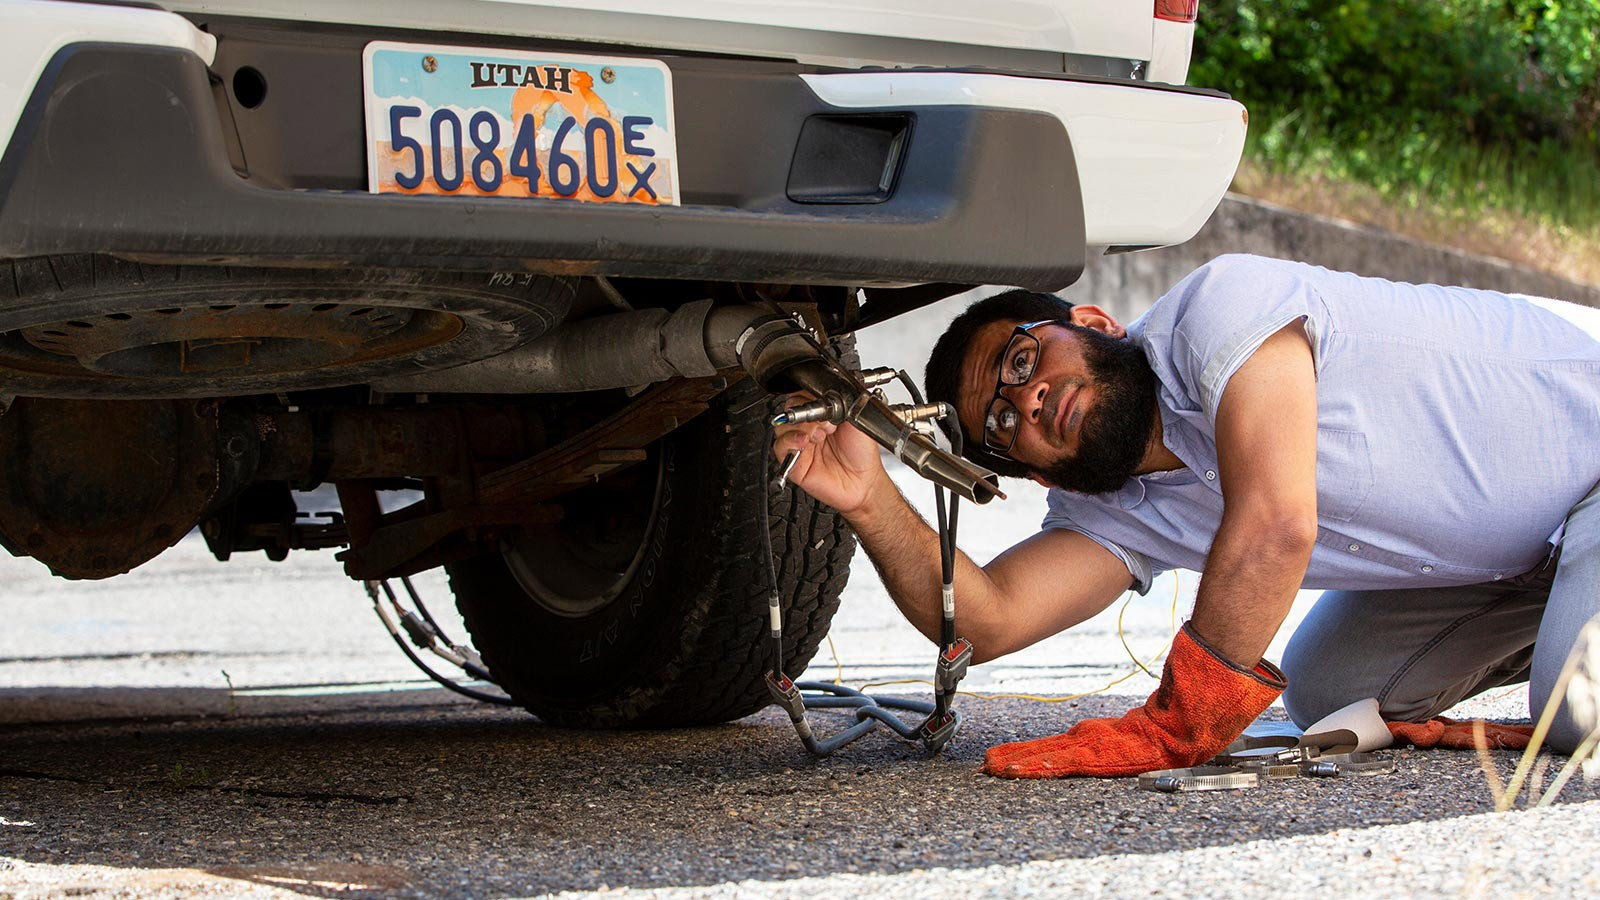 Motasem Abualqumboz checks the tailpipe of a truck.